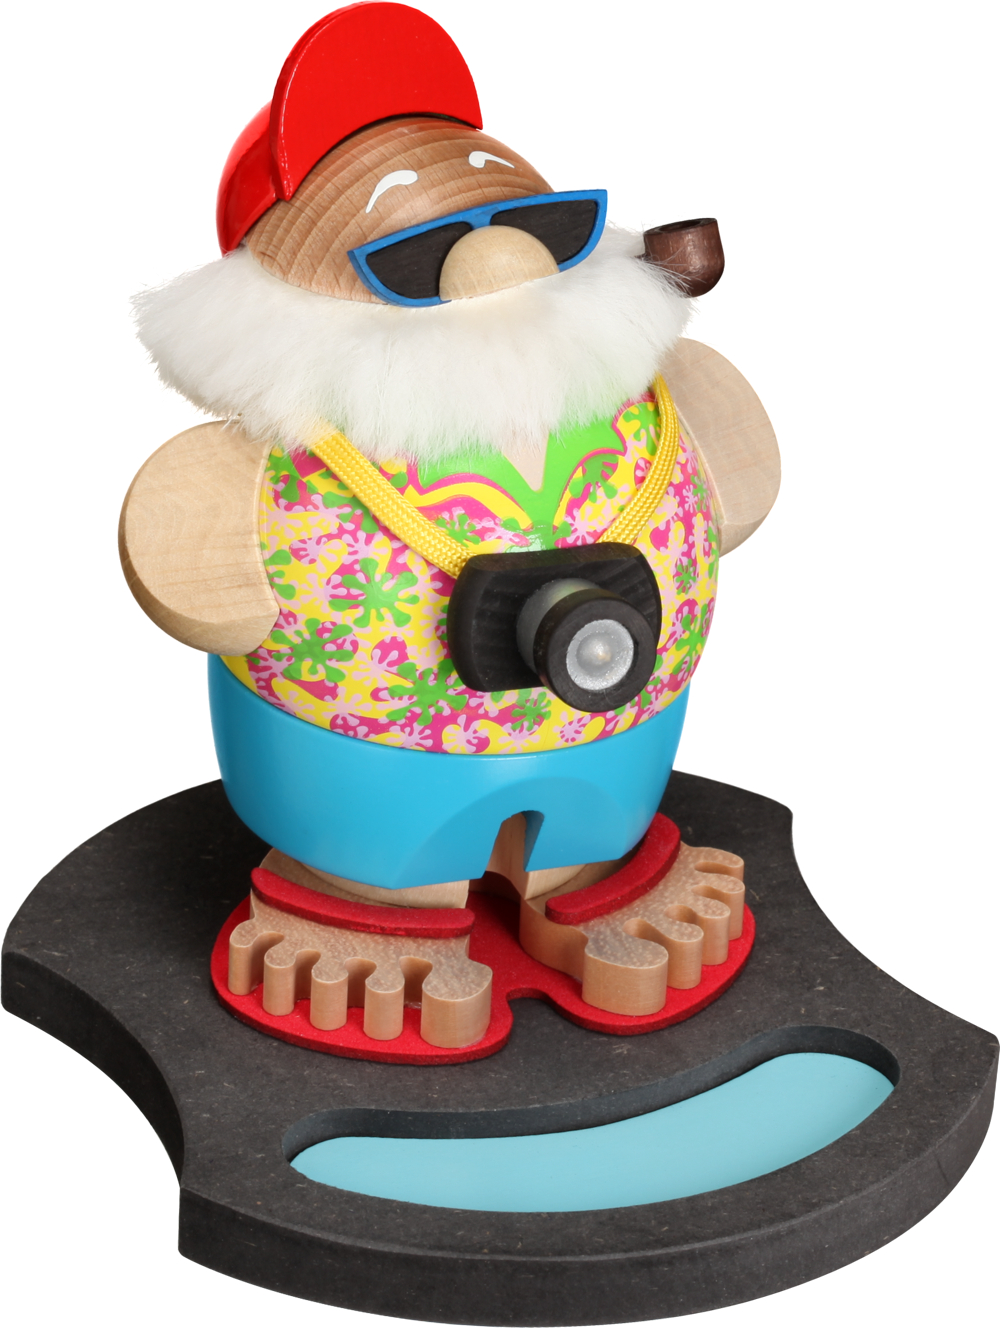 Display Pool für Kugelräucherfigur Nikolaus incognito **Neu 2016**